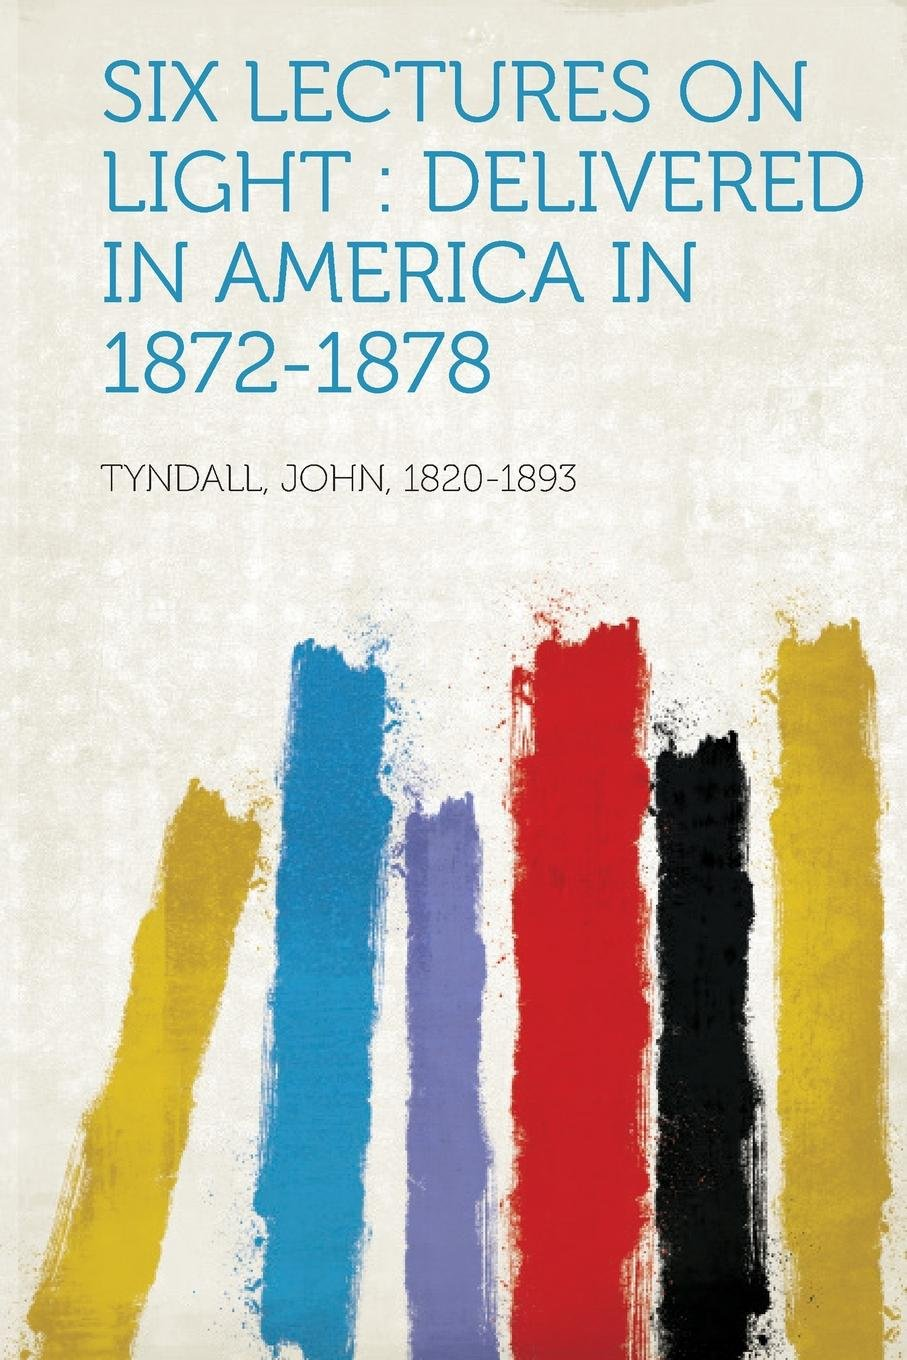 Download Six Lectures on Light: Delivered in America in 1872-1878 ePub fb2 book